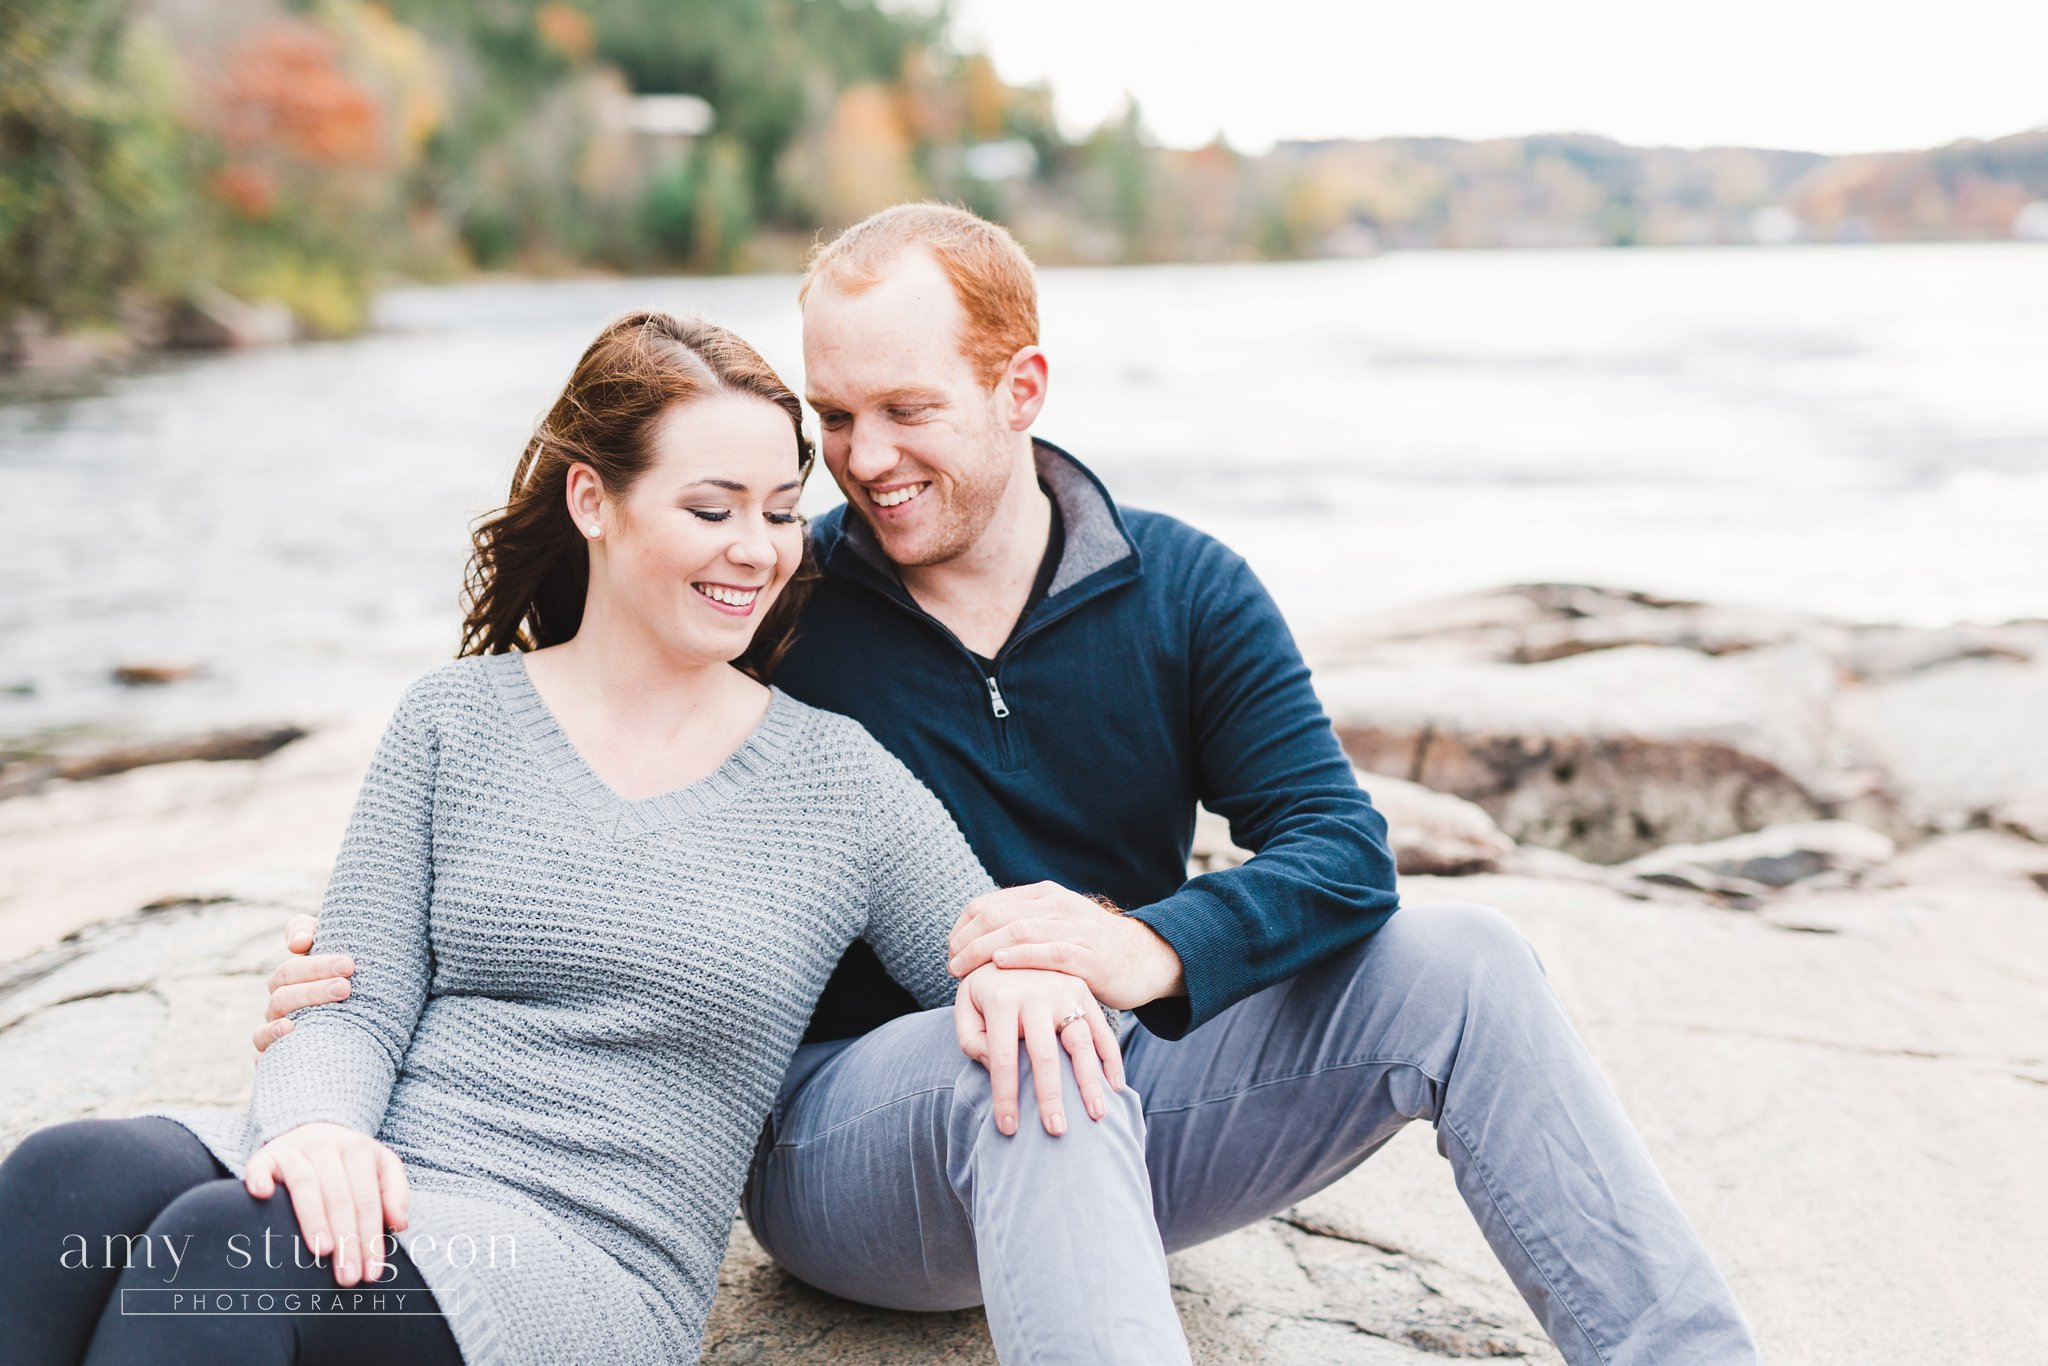 Sitting pose for the Fall Wakefield Engagement Session by the covered bridge